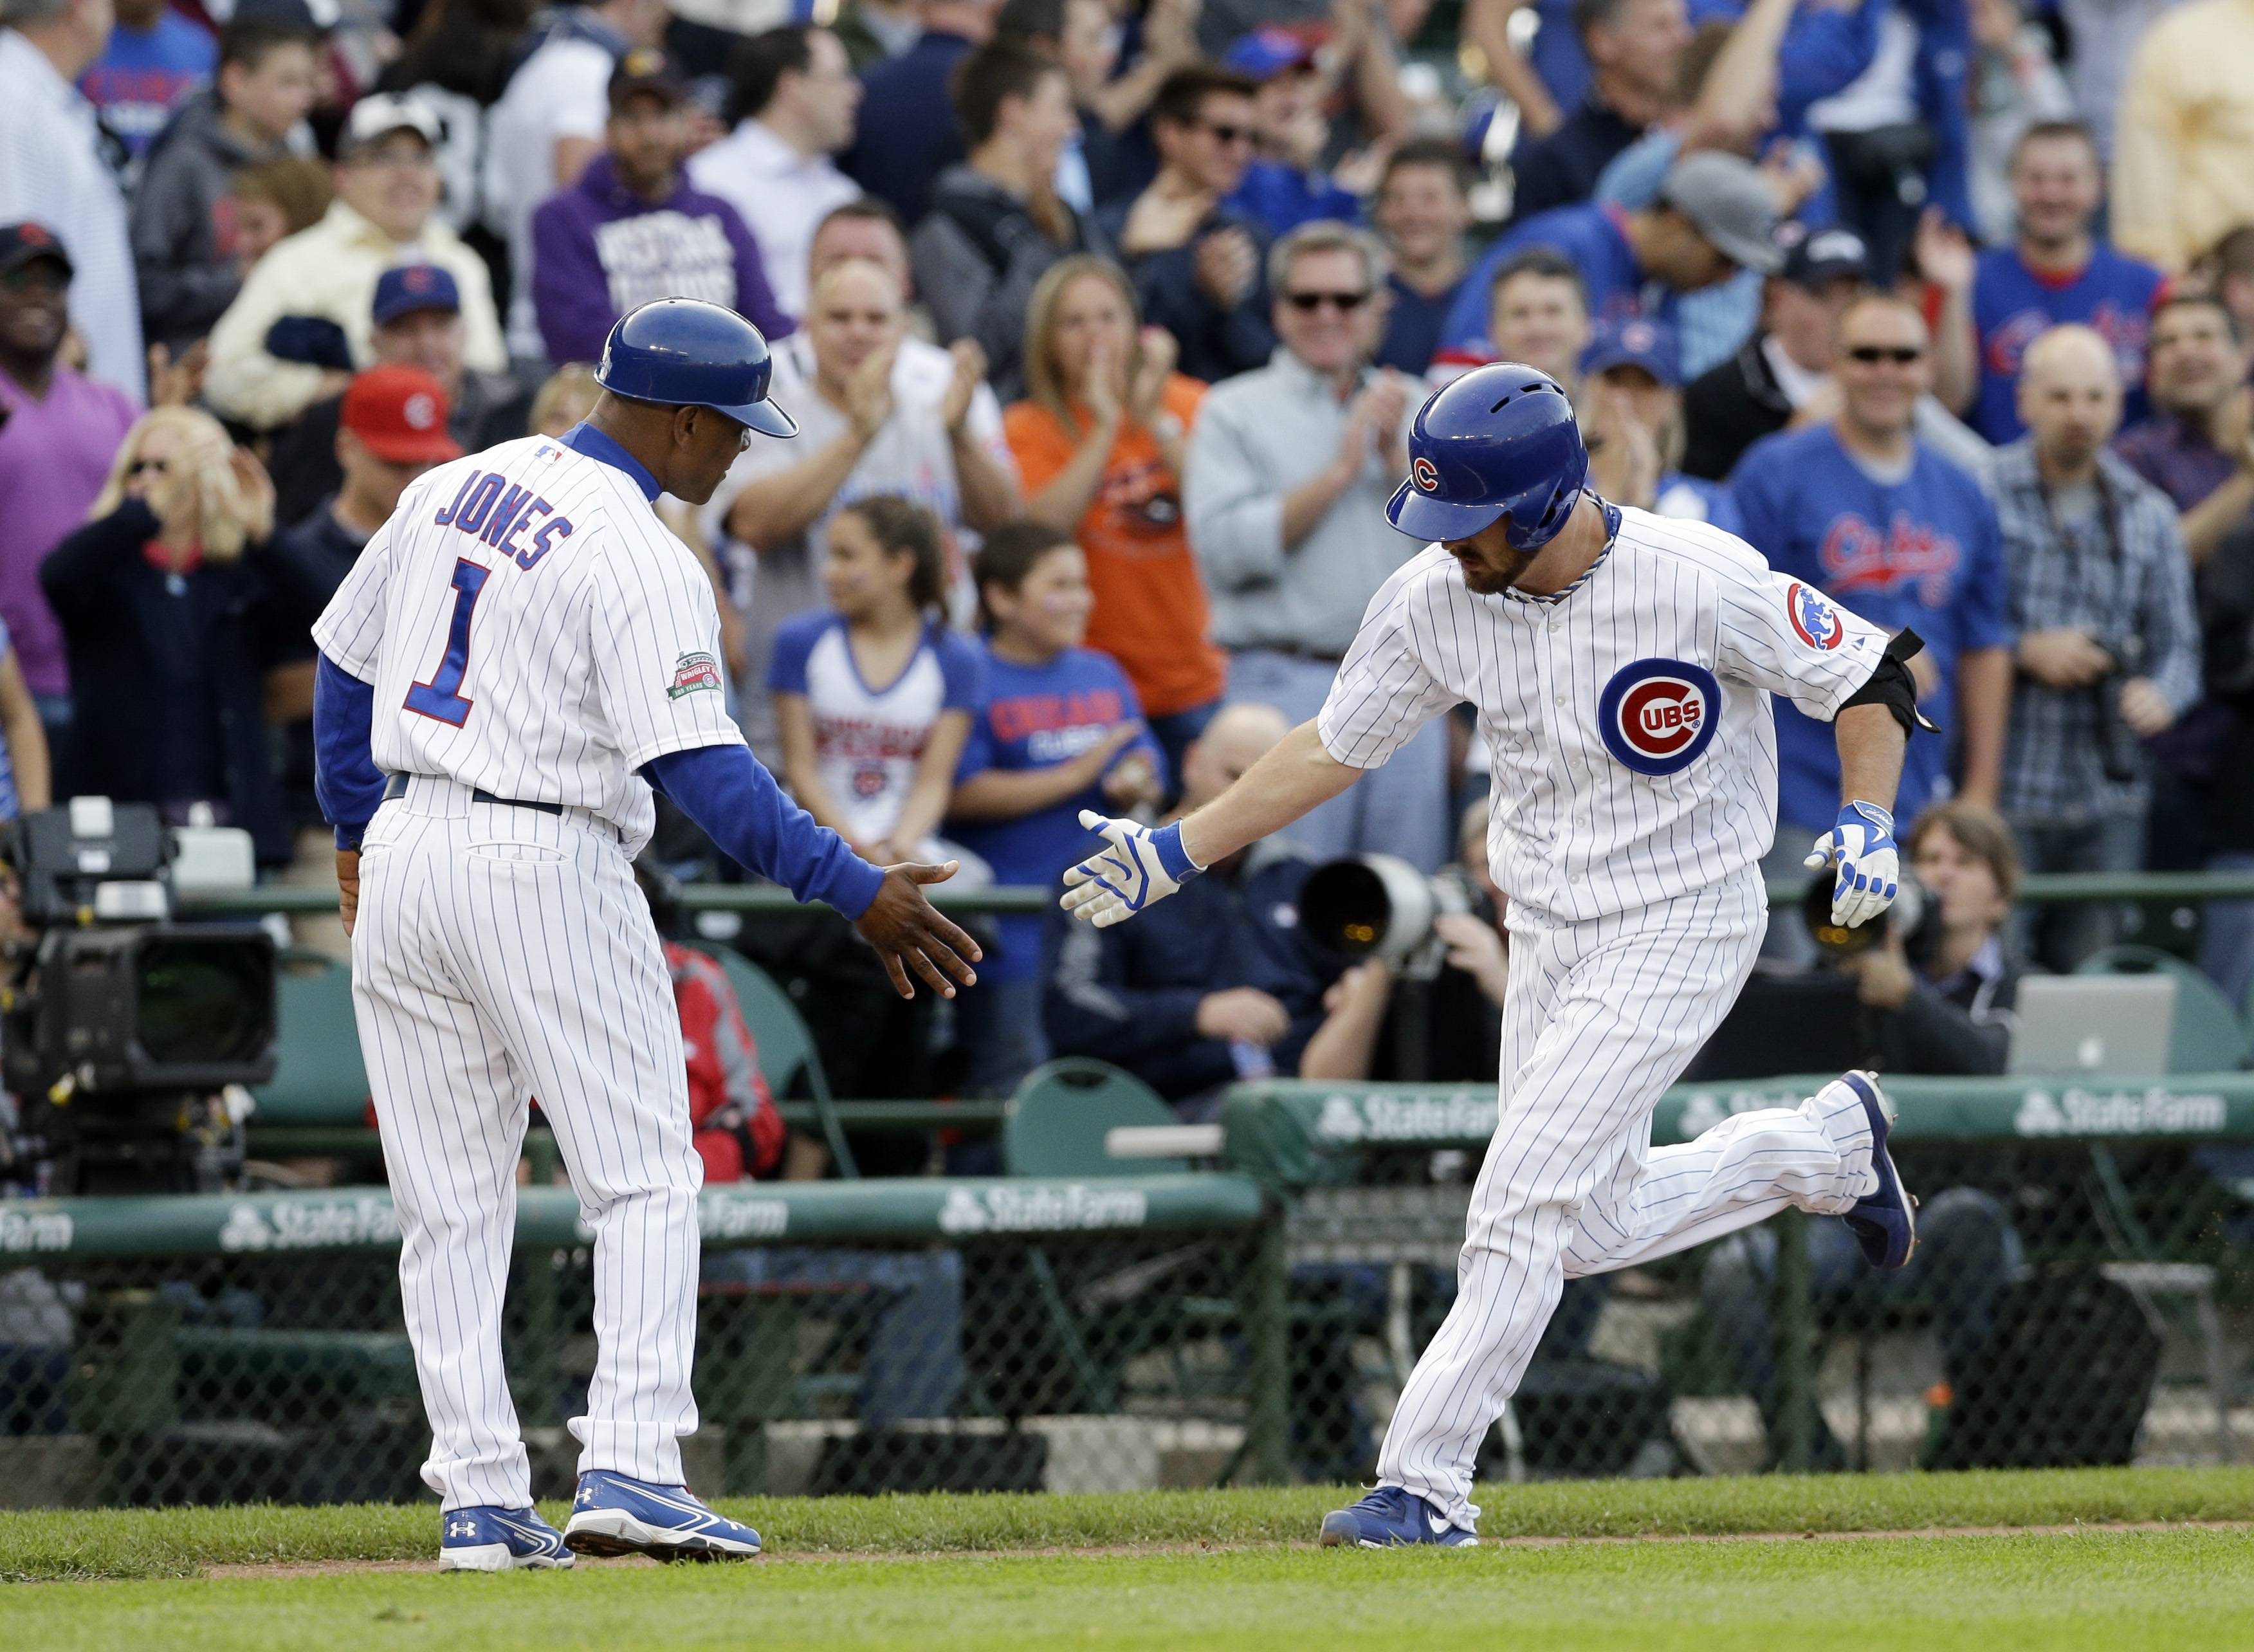 Cubs sweep Mets behind Wood's strong outing